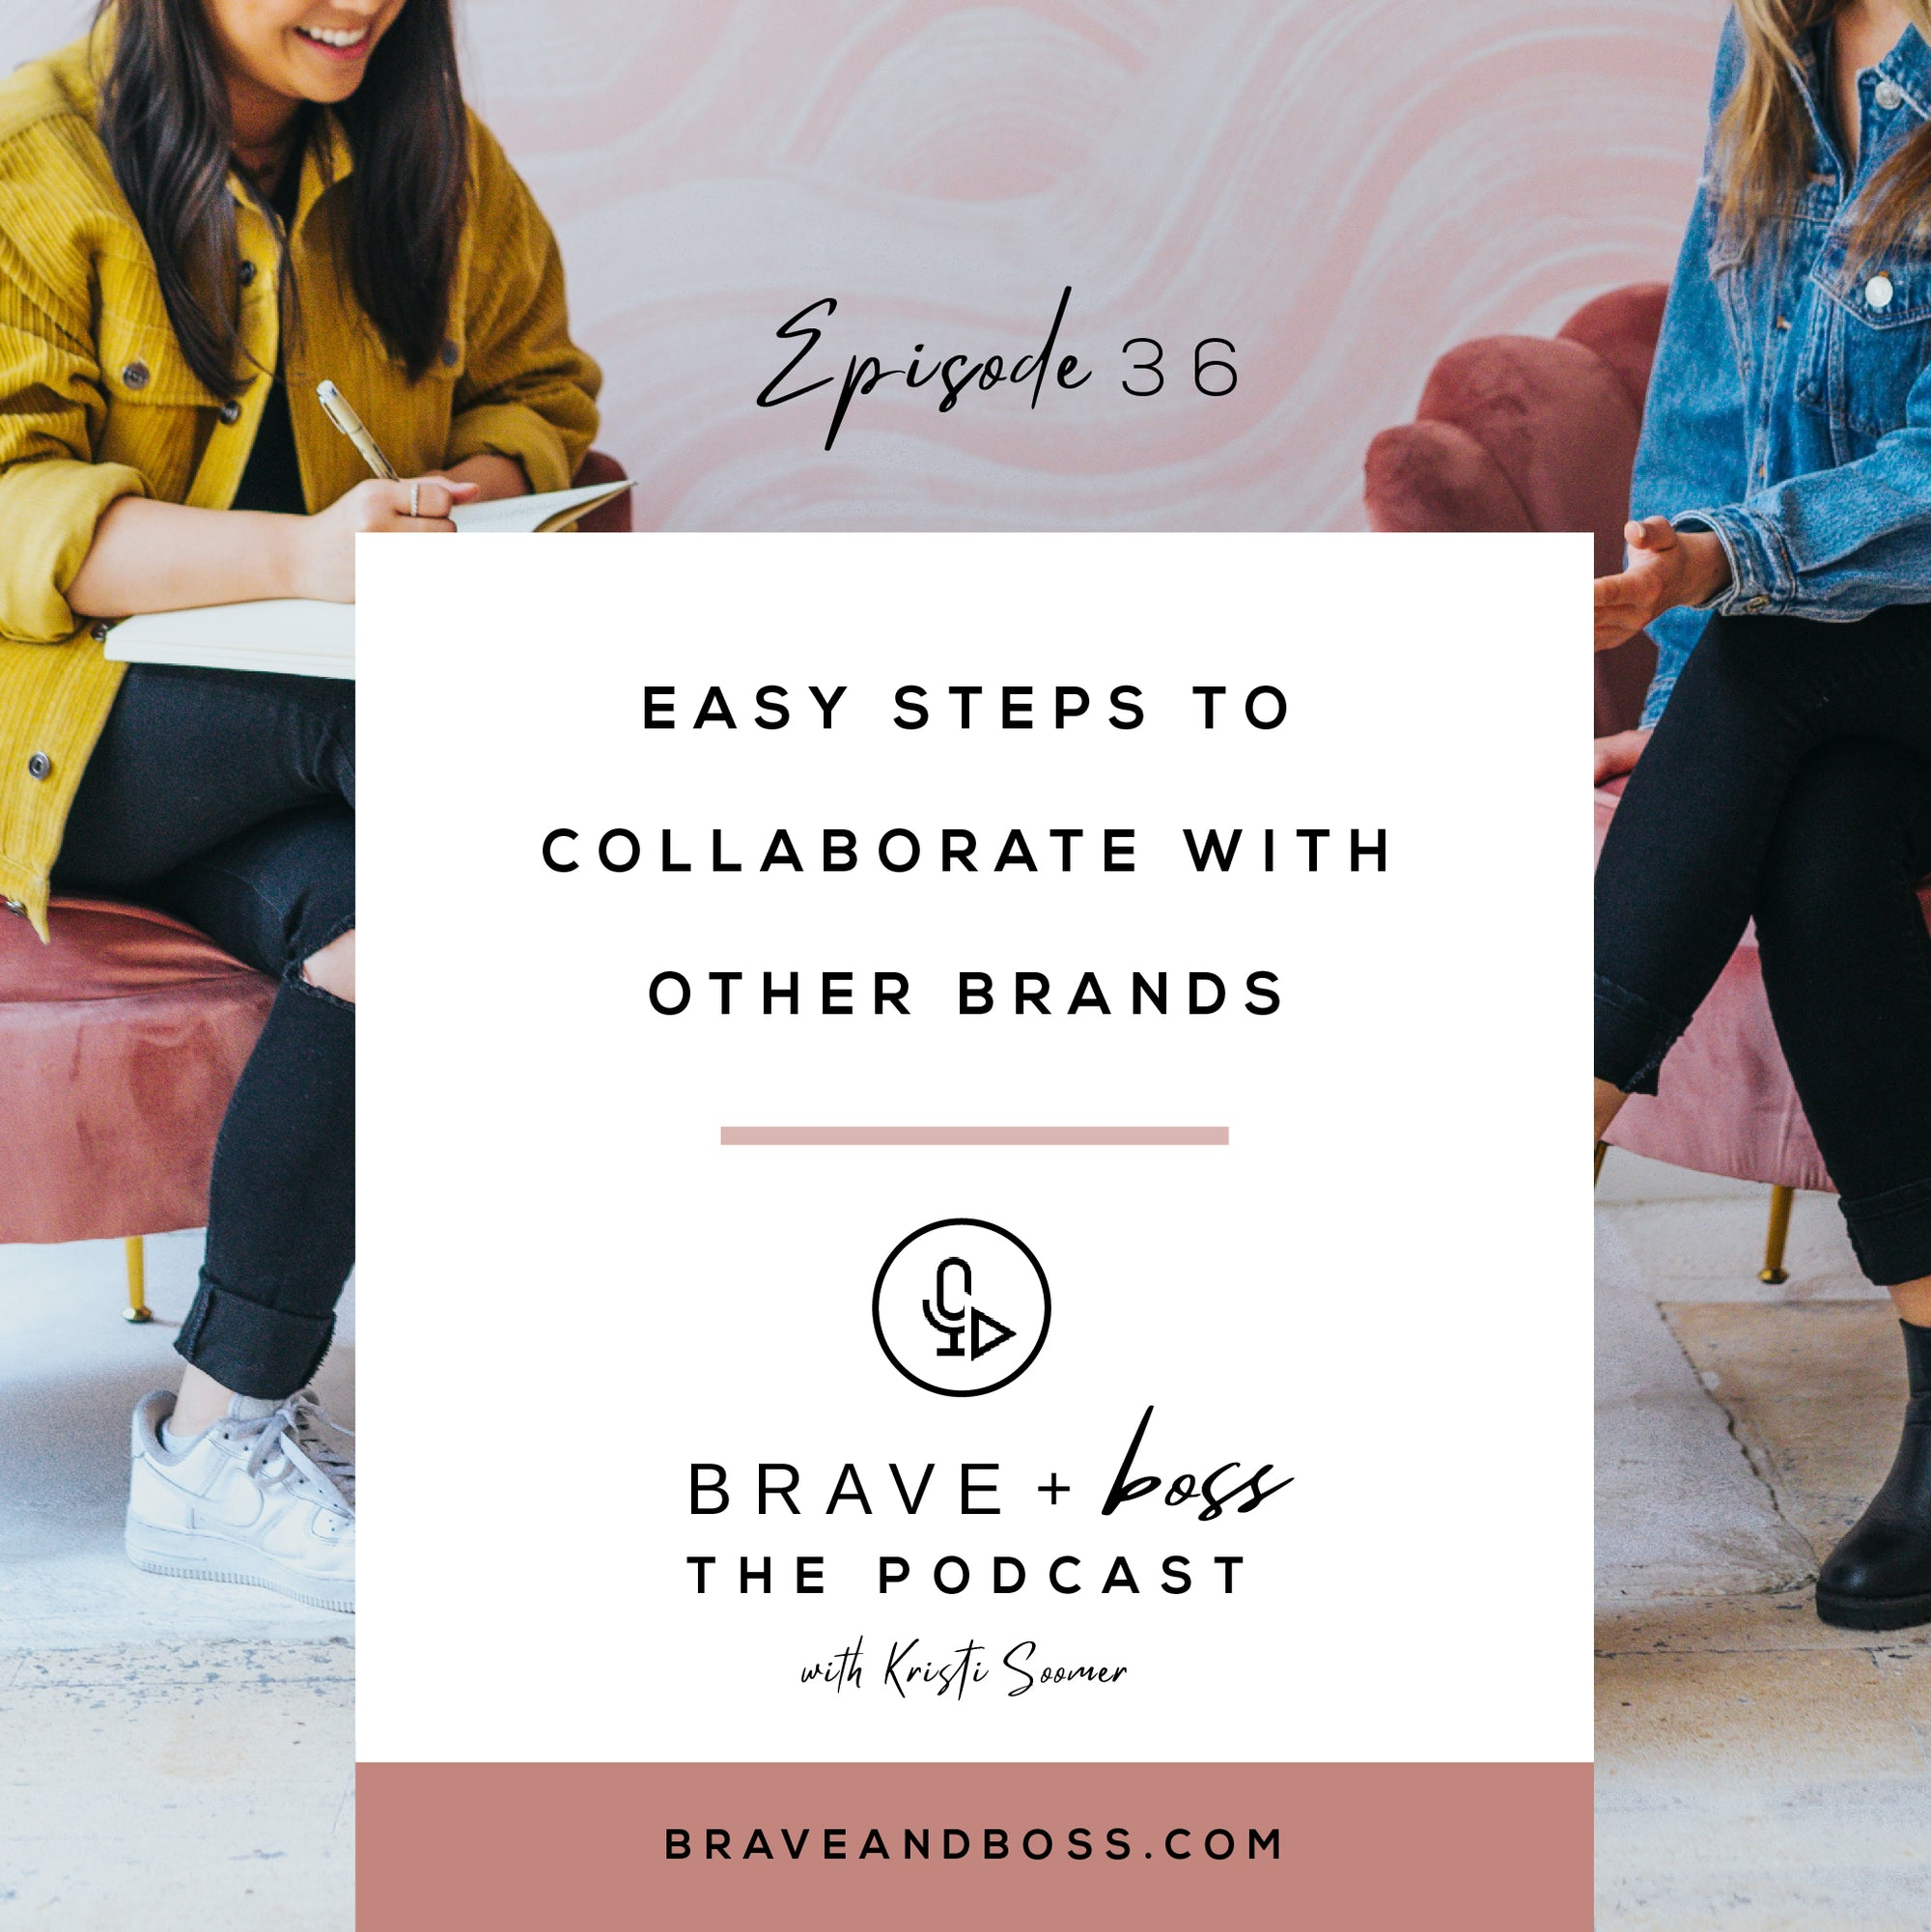 Easy Steps to Collaborate with Other Brands